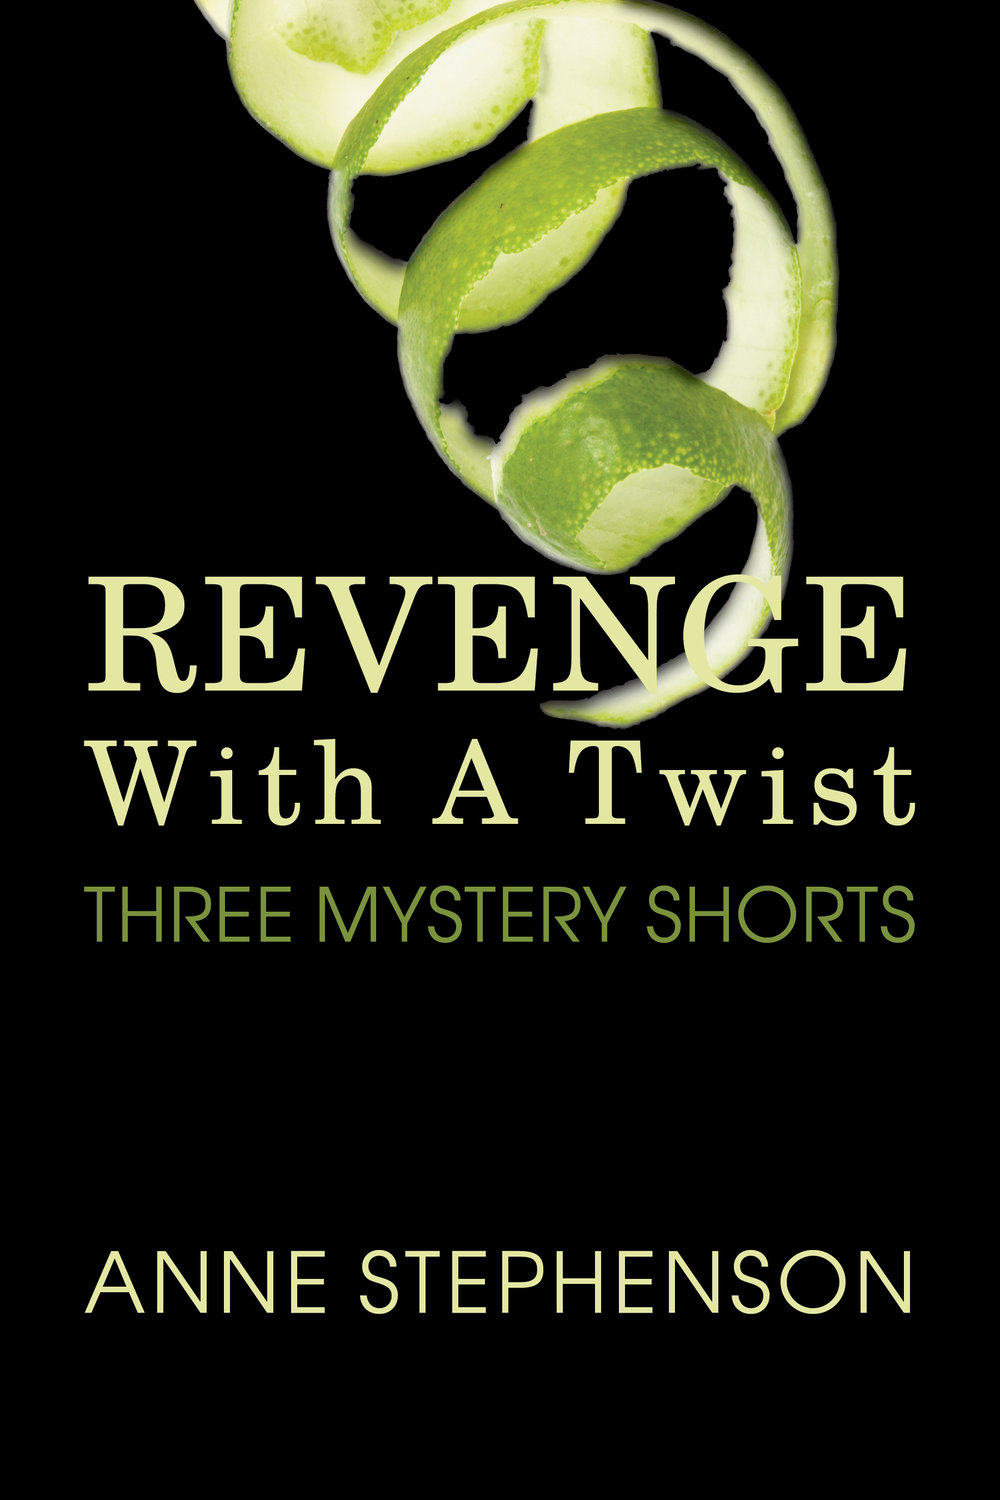 Revenge With A Twist Available on Kobo and Kindle, as well as other ebook platforms! Cover artwork and ebook formatting provided by Cover&Layout.